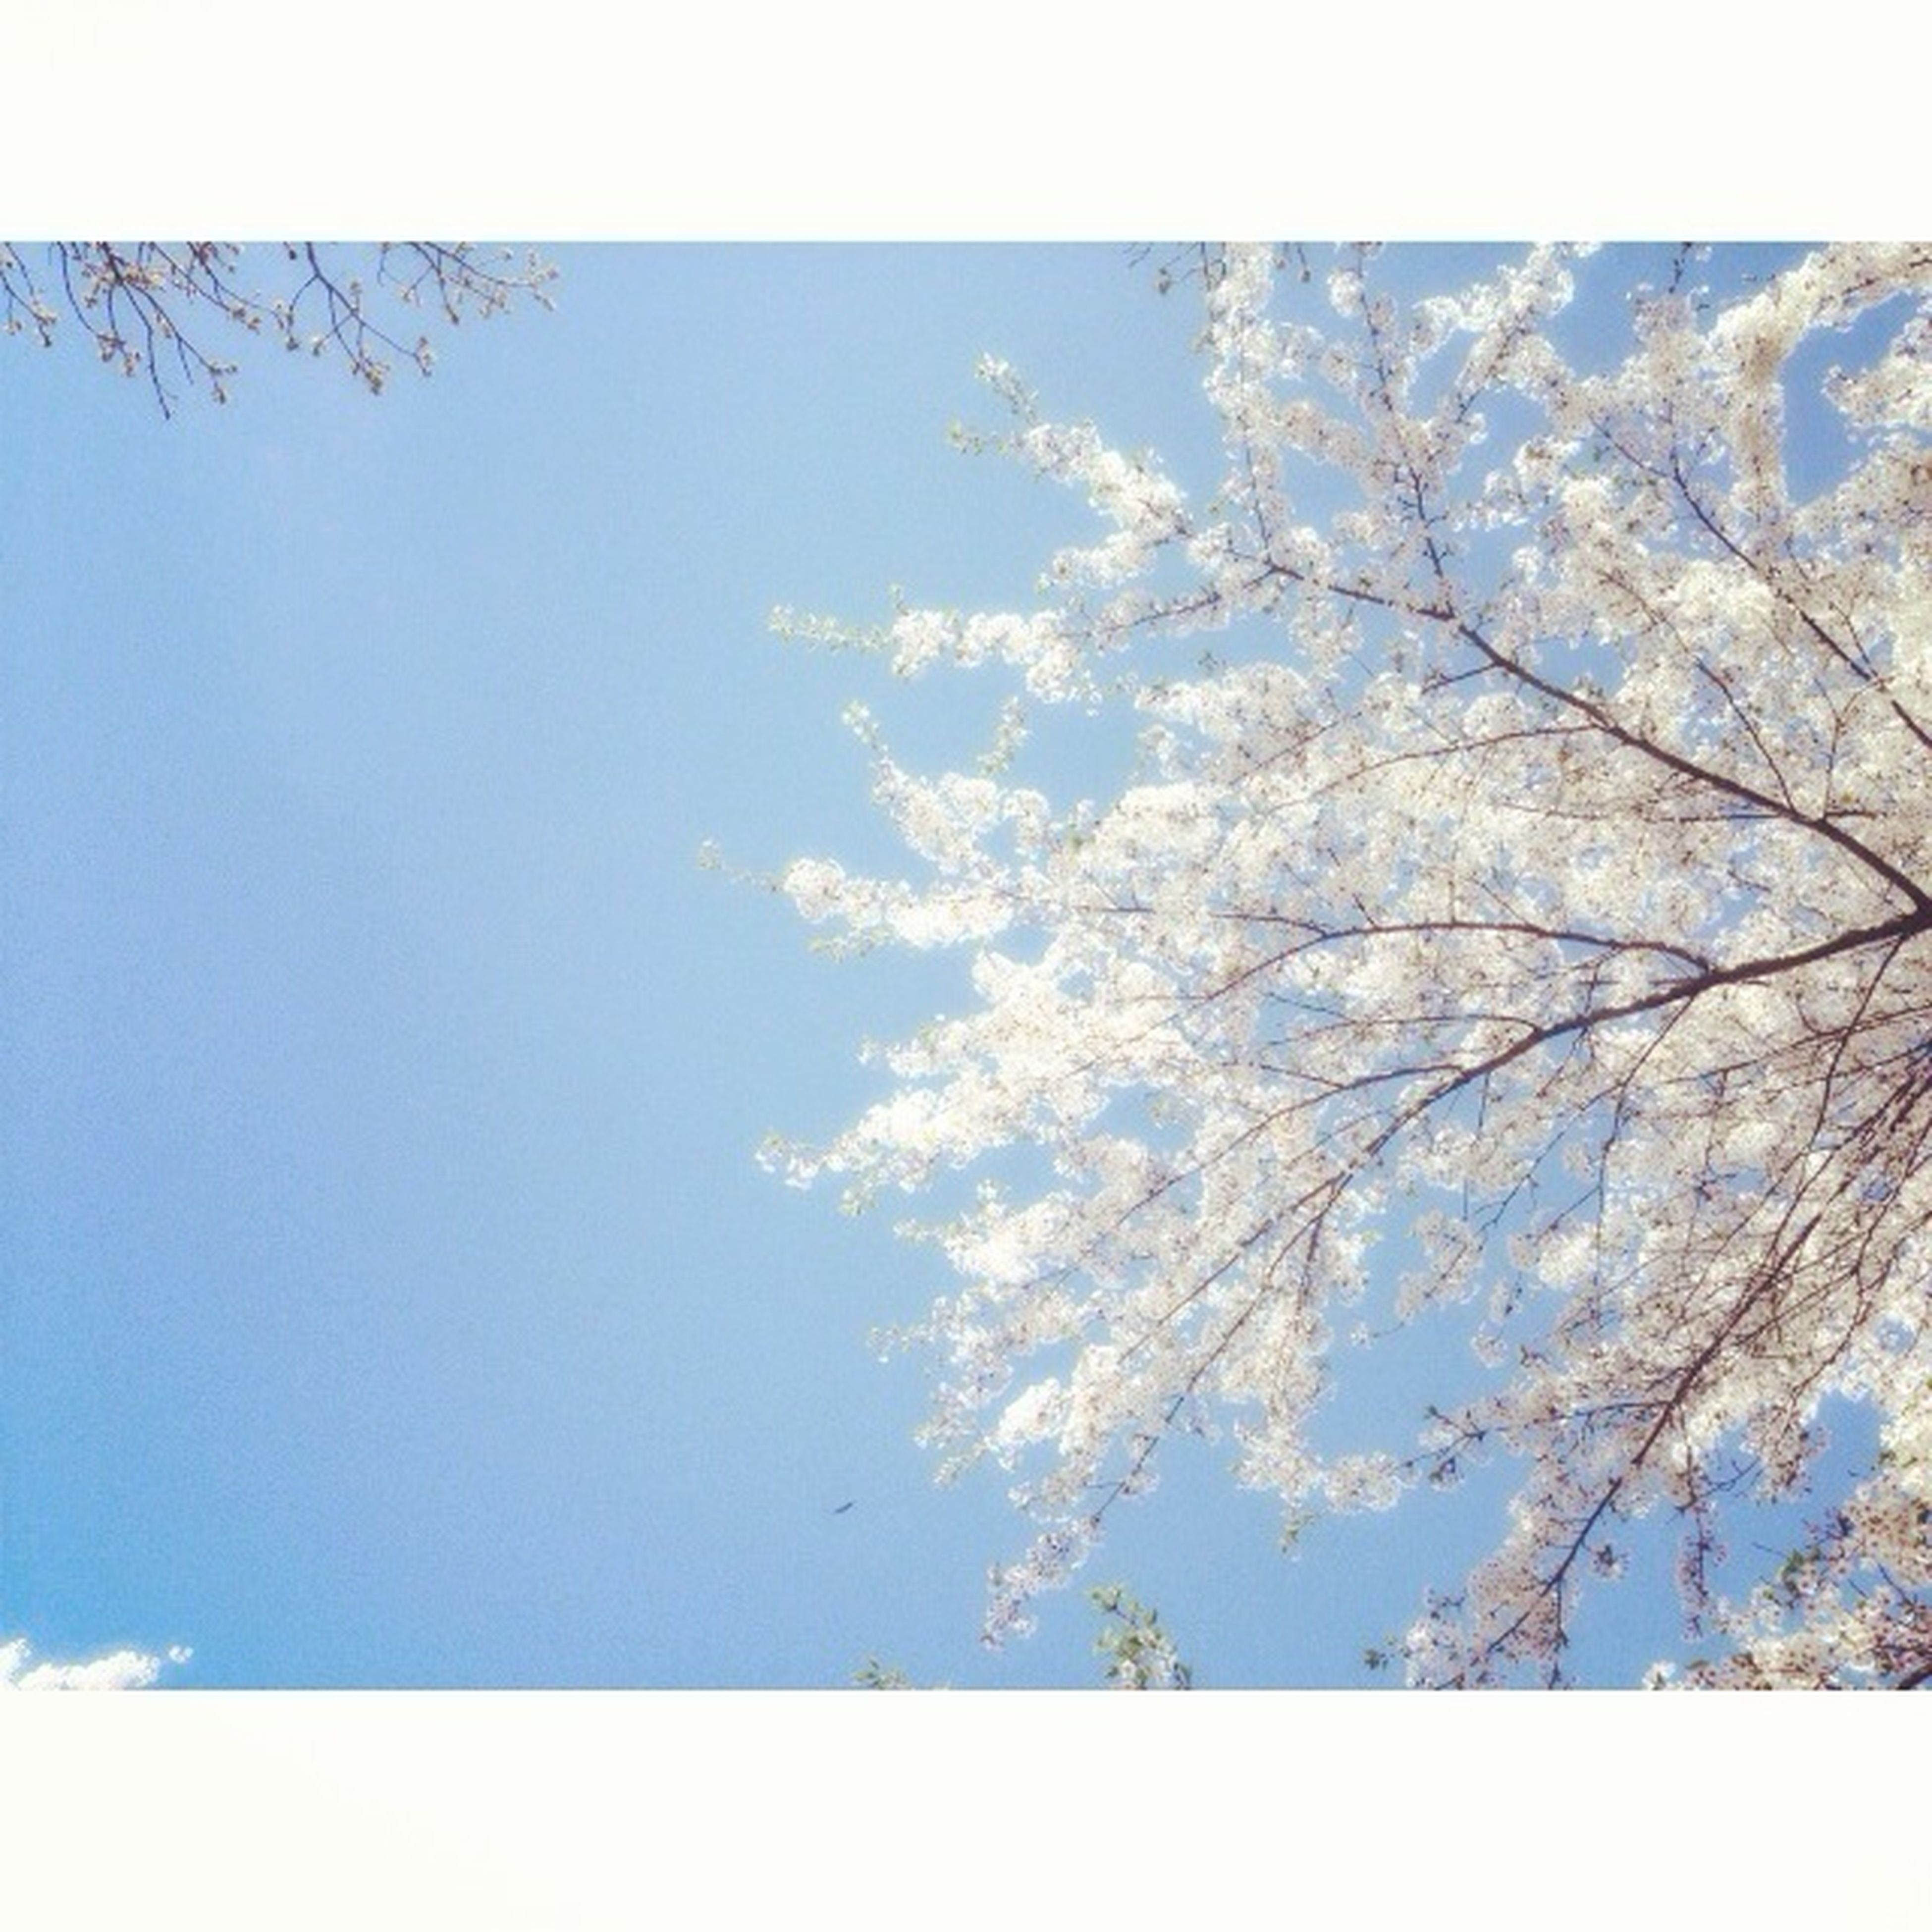 low angle view, tree, branch, growth, beauty in nature, flower, nature, blue, sky, freshness, clear sky, day, blossom, auto post production filter, tranquility, fragility, outdoors, no people, white color, transfer print